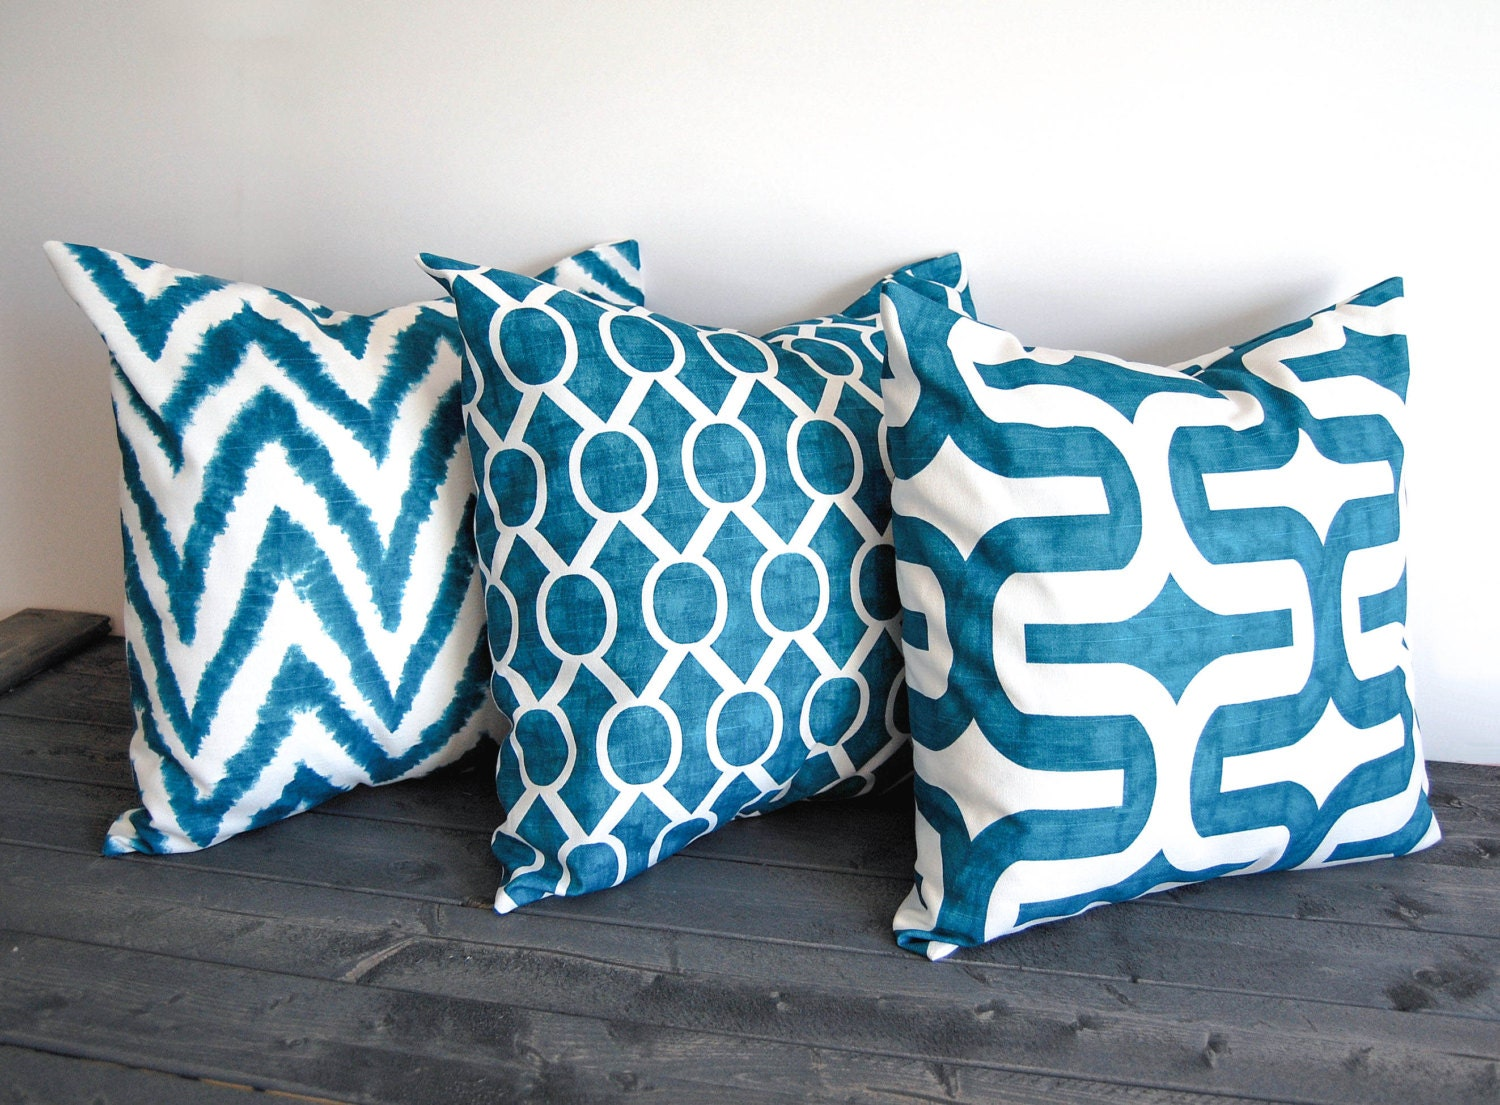 Teal Blue Throw Pillow Covers : Teal throw pillow covers set of three 20 x 20 by ThePillowPeople